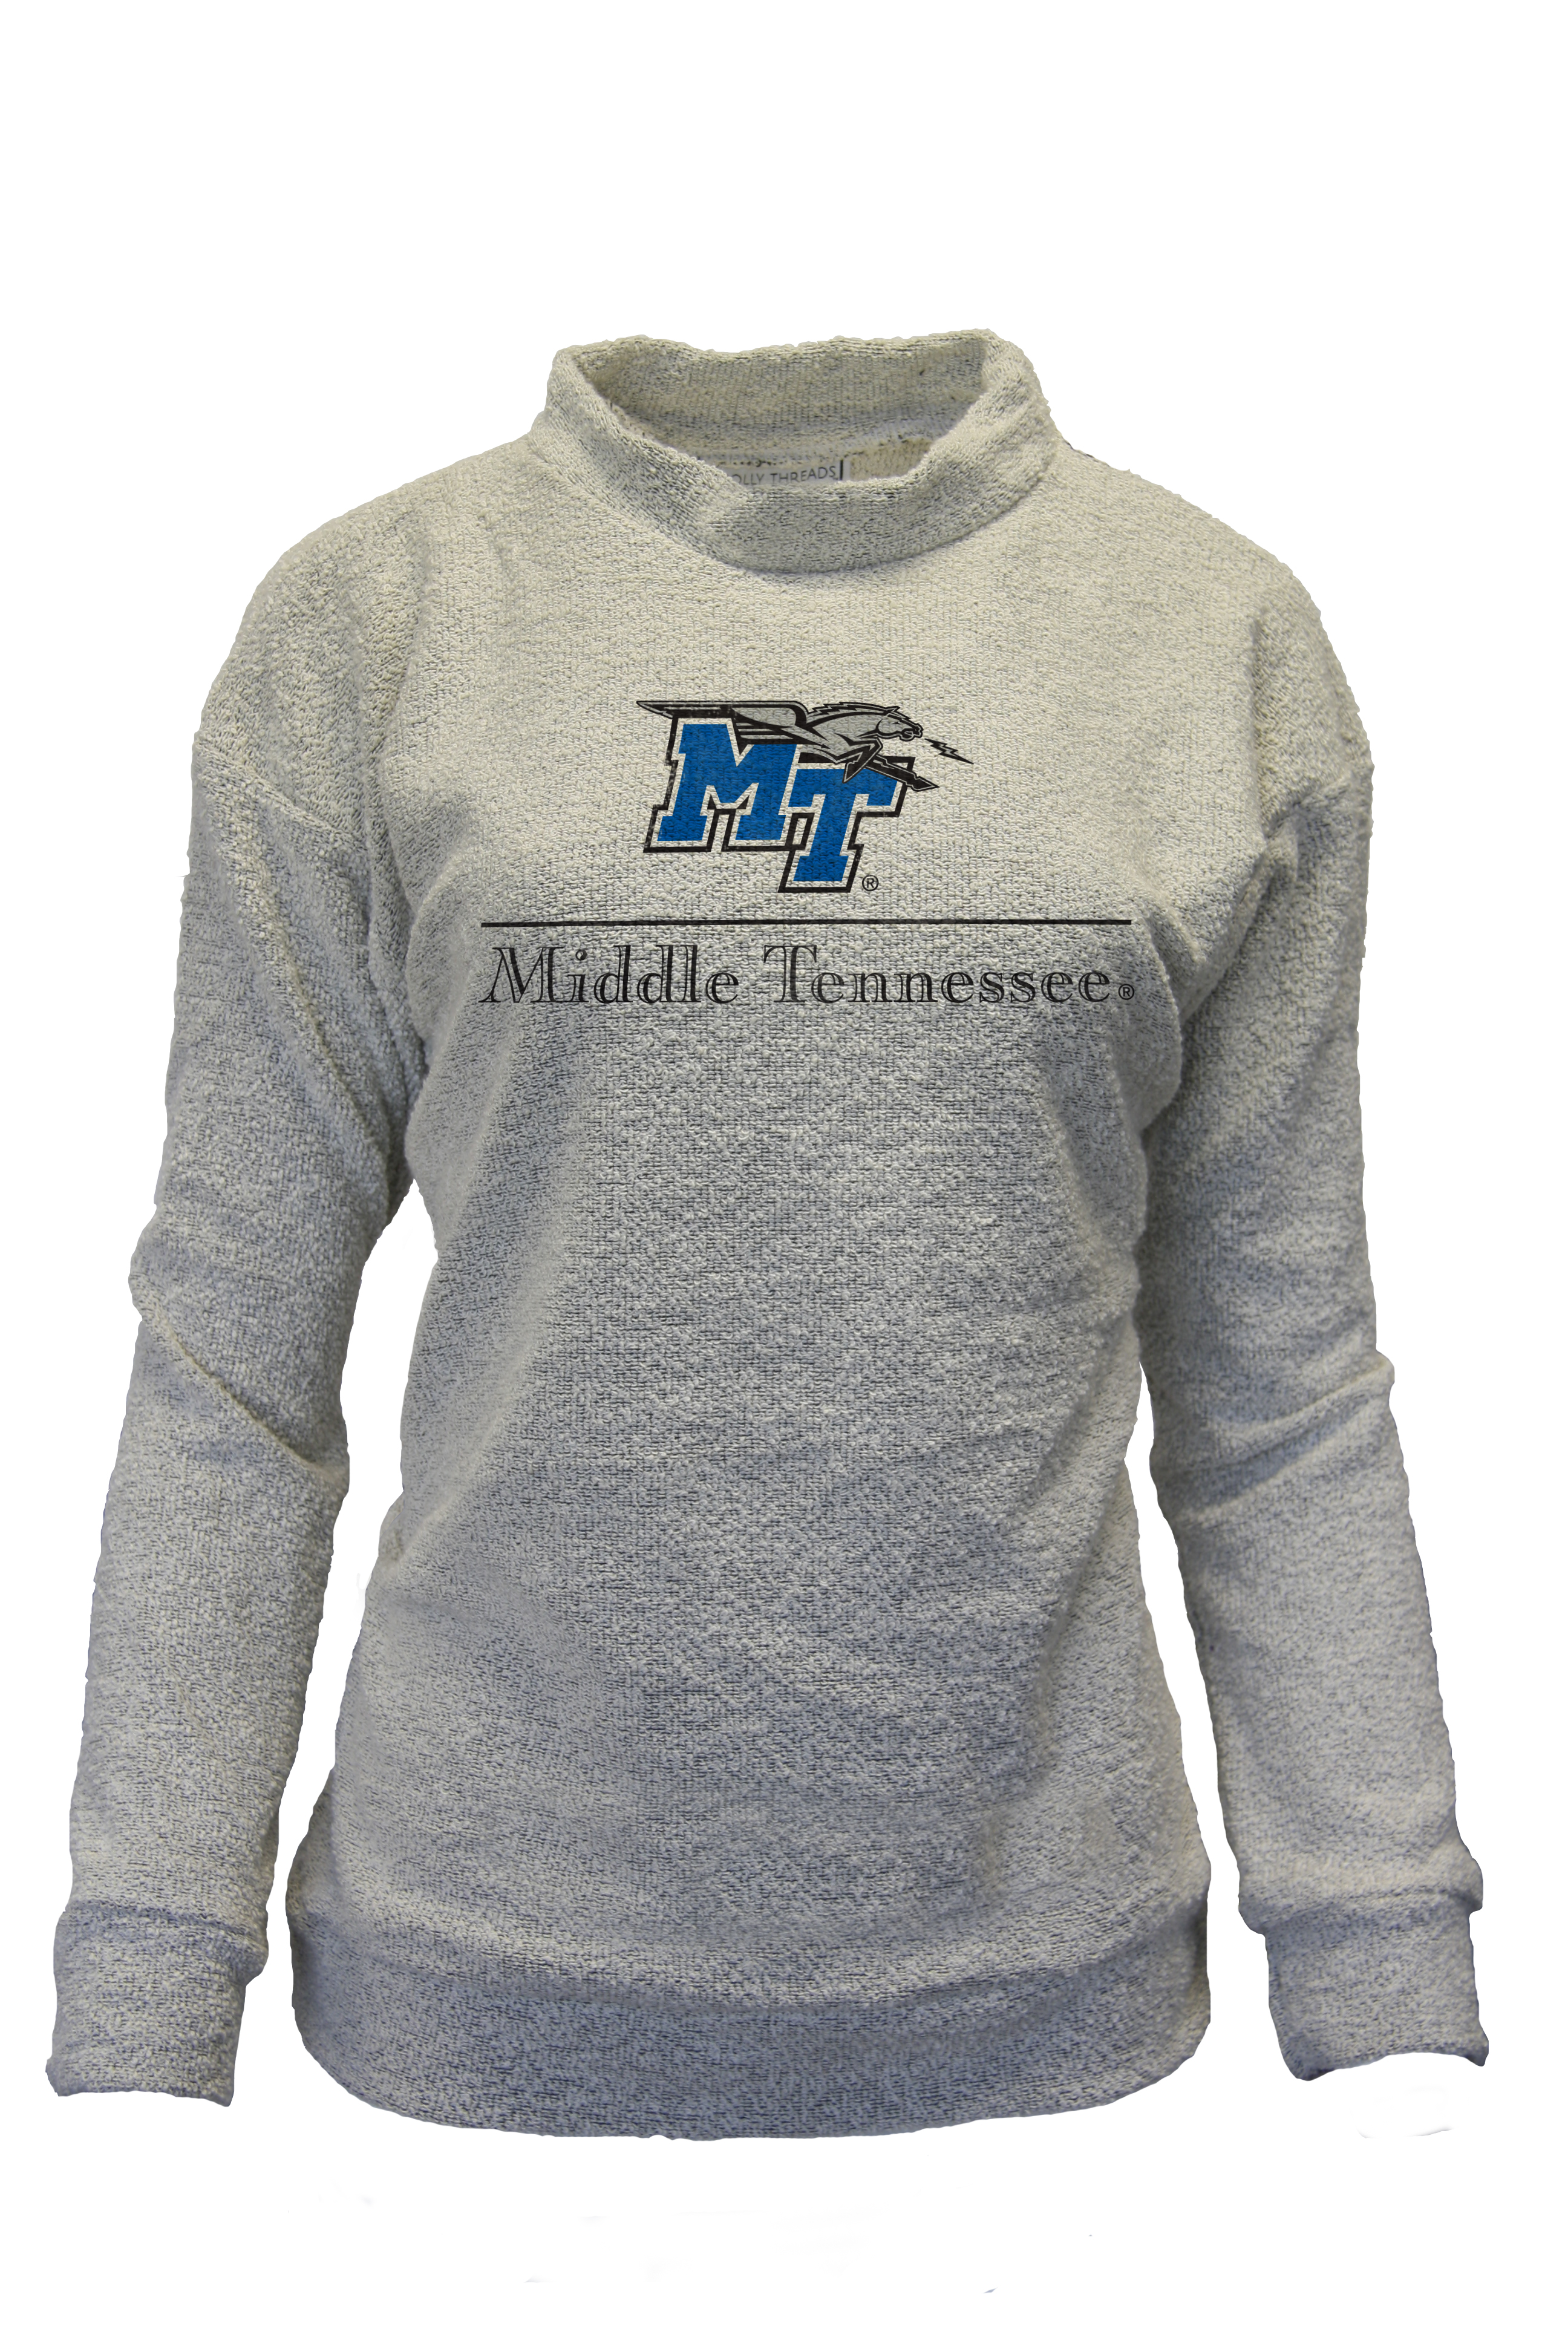 MT Logo Woolly Threads Sweatshirt